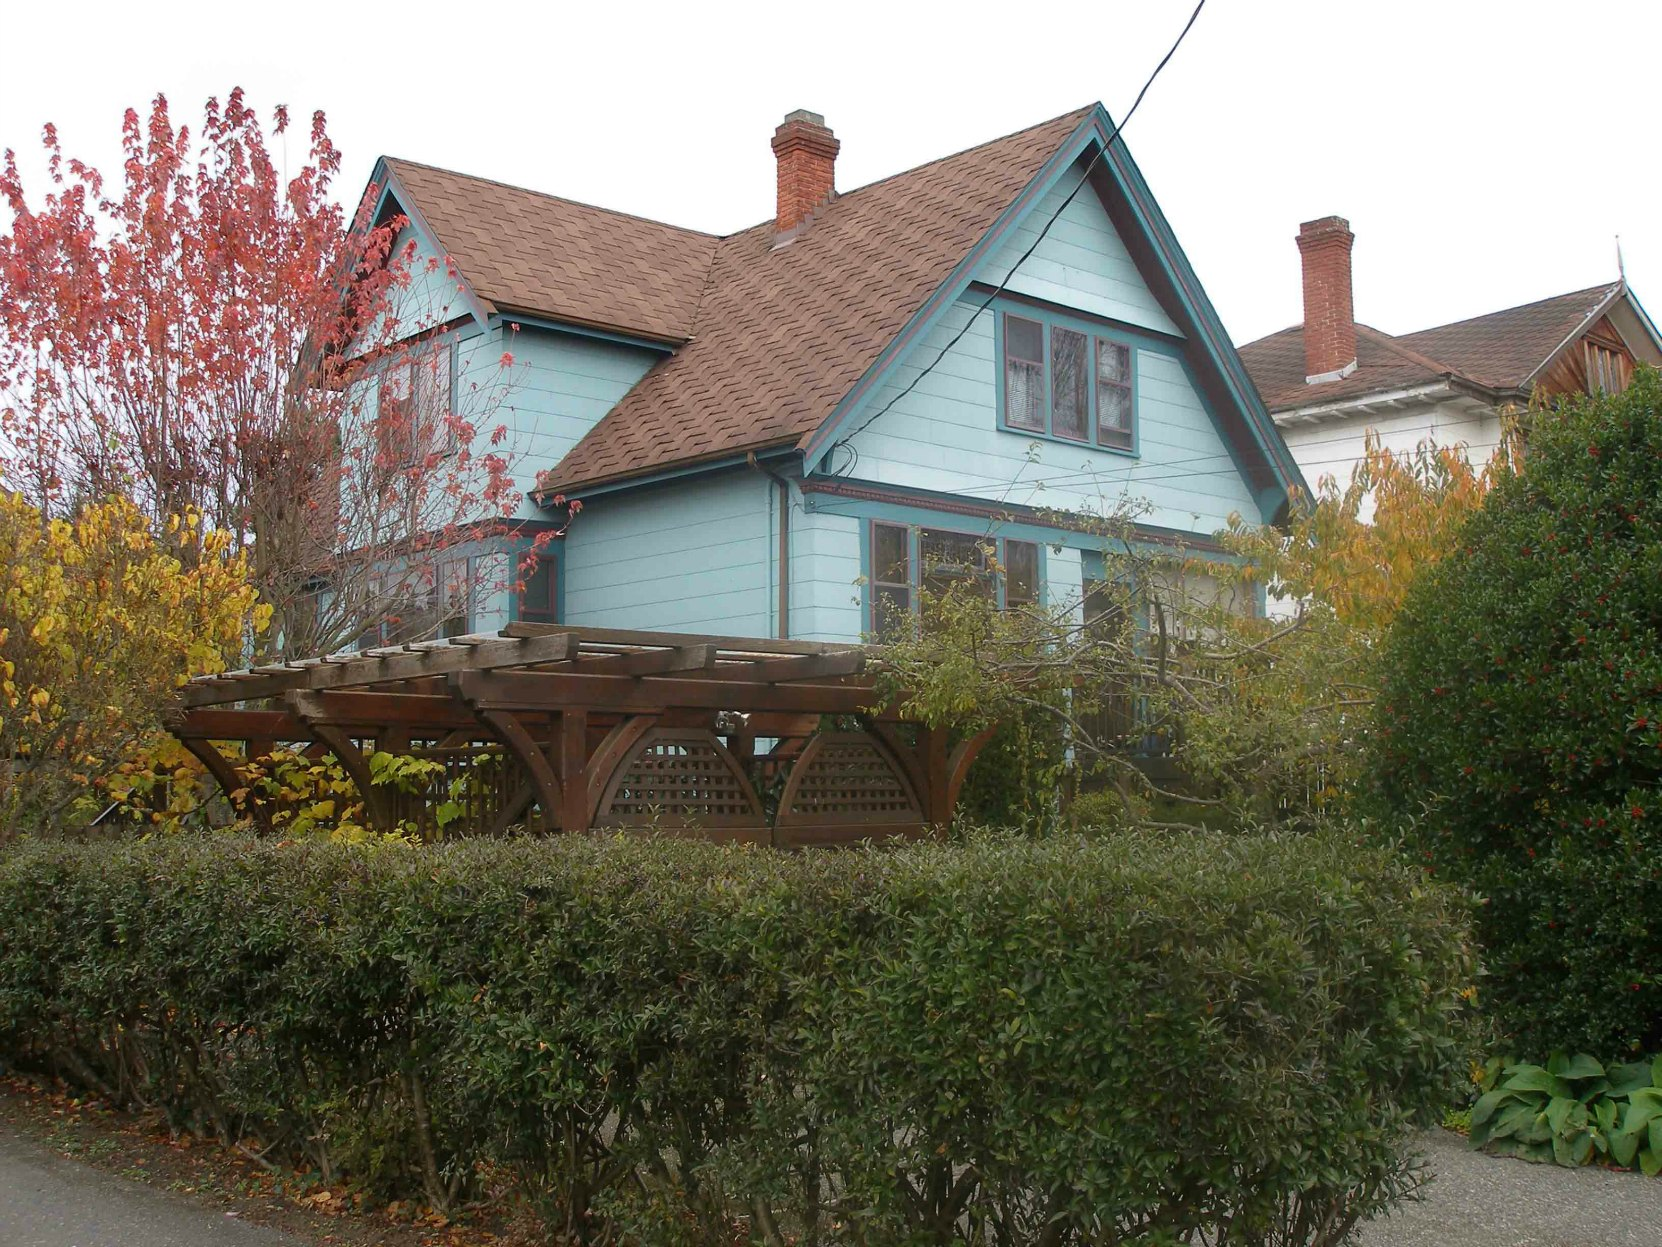 1138 Richardson, Victoria, B.C. William Gordon owned this house and was living here at the time of his death in 1924.